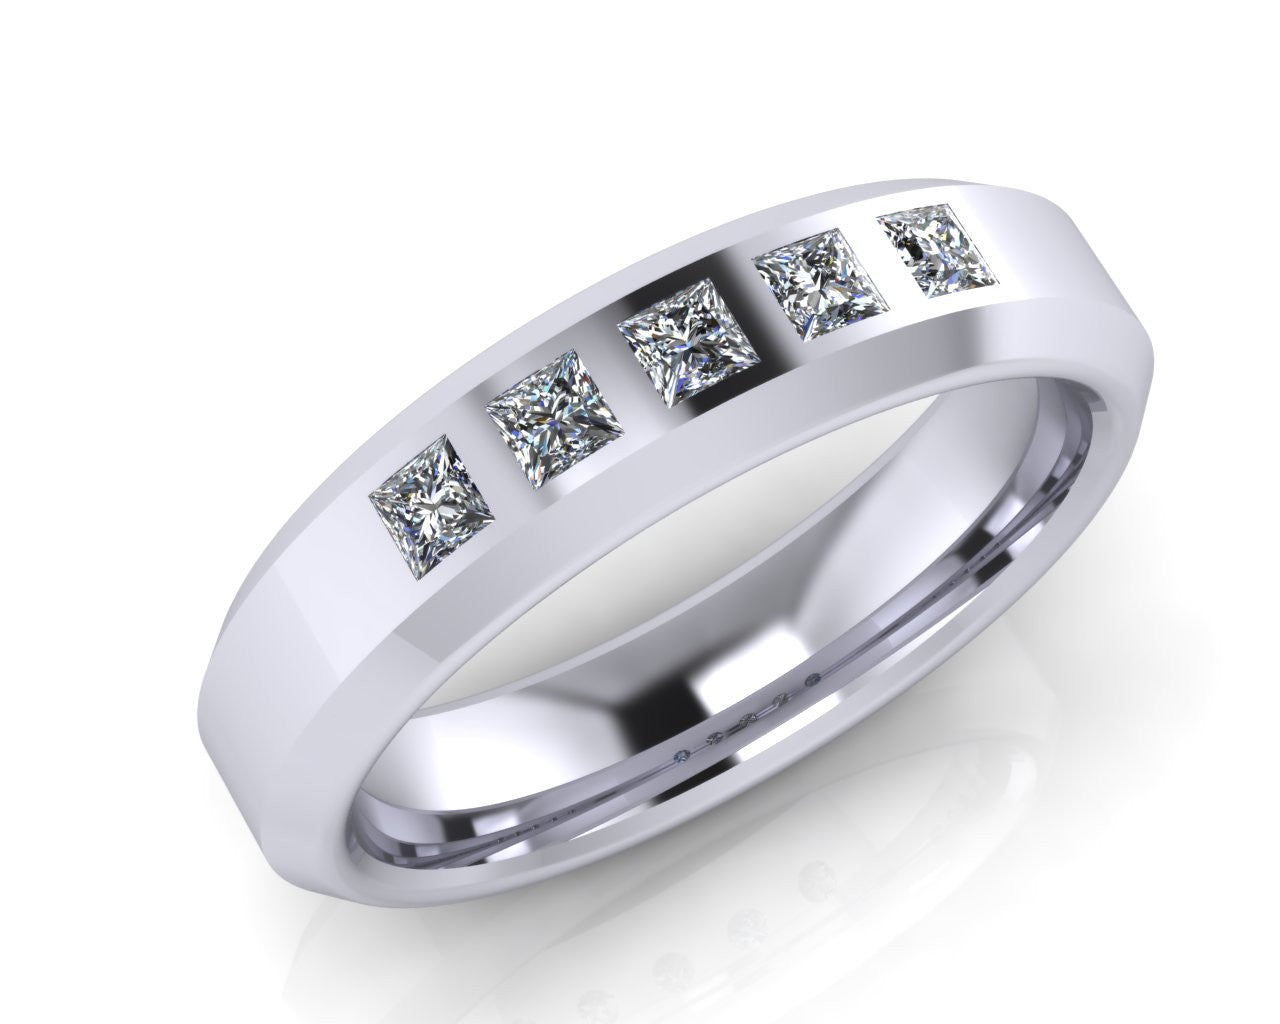 Platinum Bevel Edge Princess-cut Diamond Wedding Ring - Andrew Scott